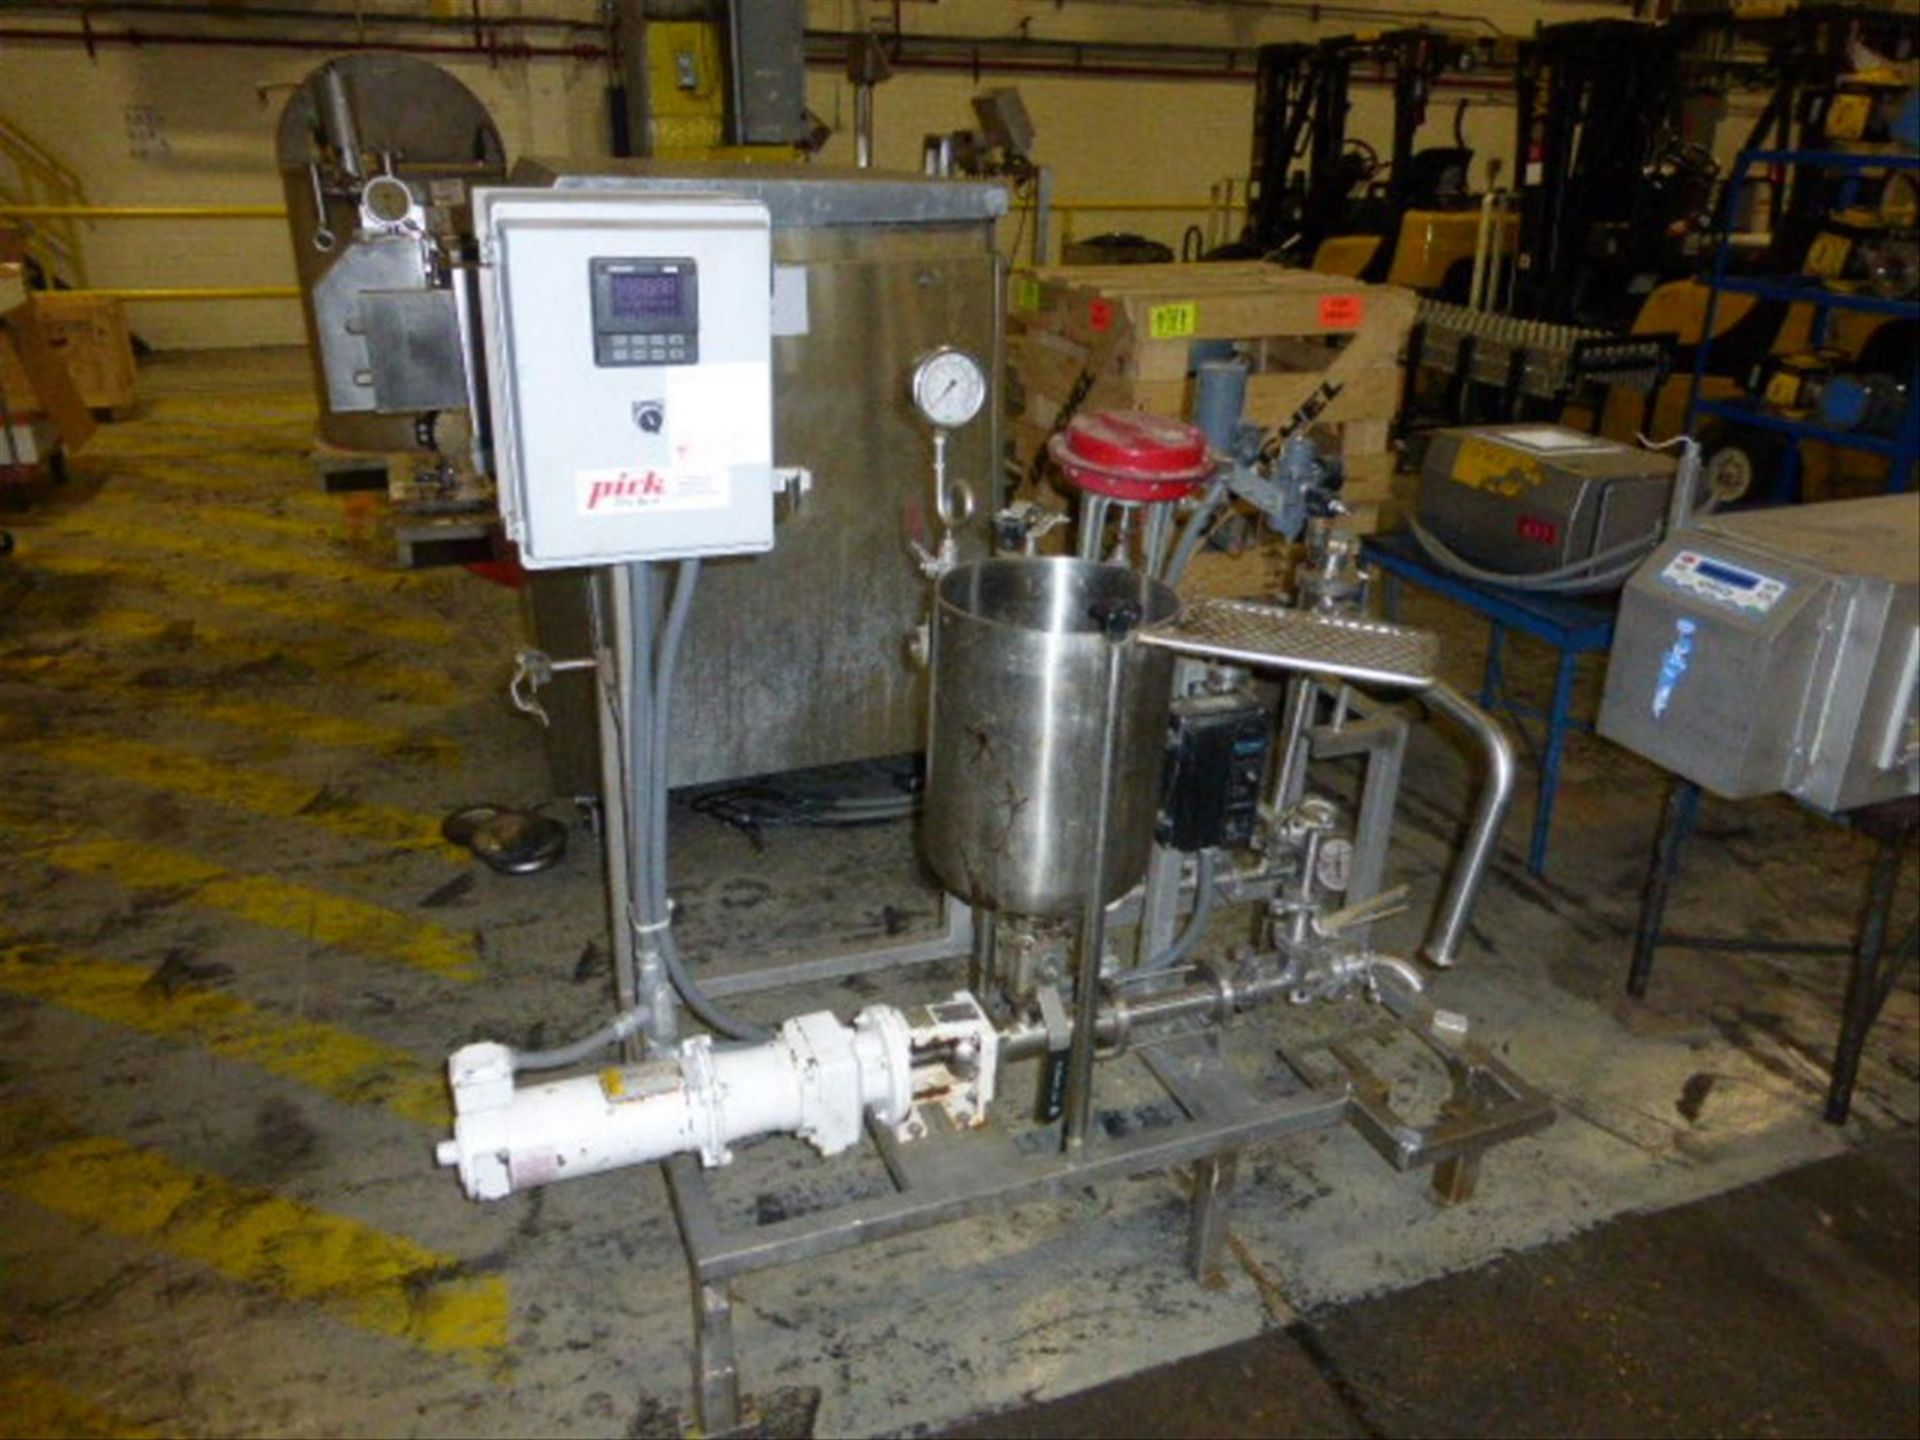 Lot 135 - Pick Heating Process Unit with Moyno EB2A SSE3 #7427602 with 0.5 HP Stainless Steel Tank, 11.5 in